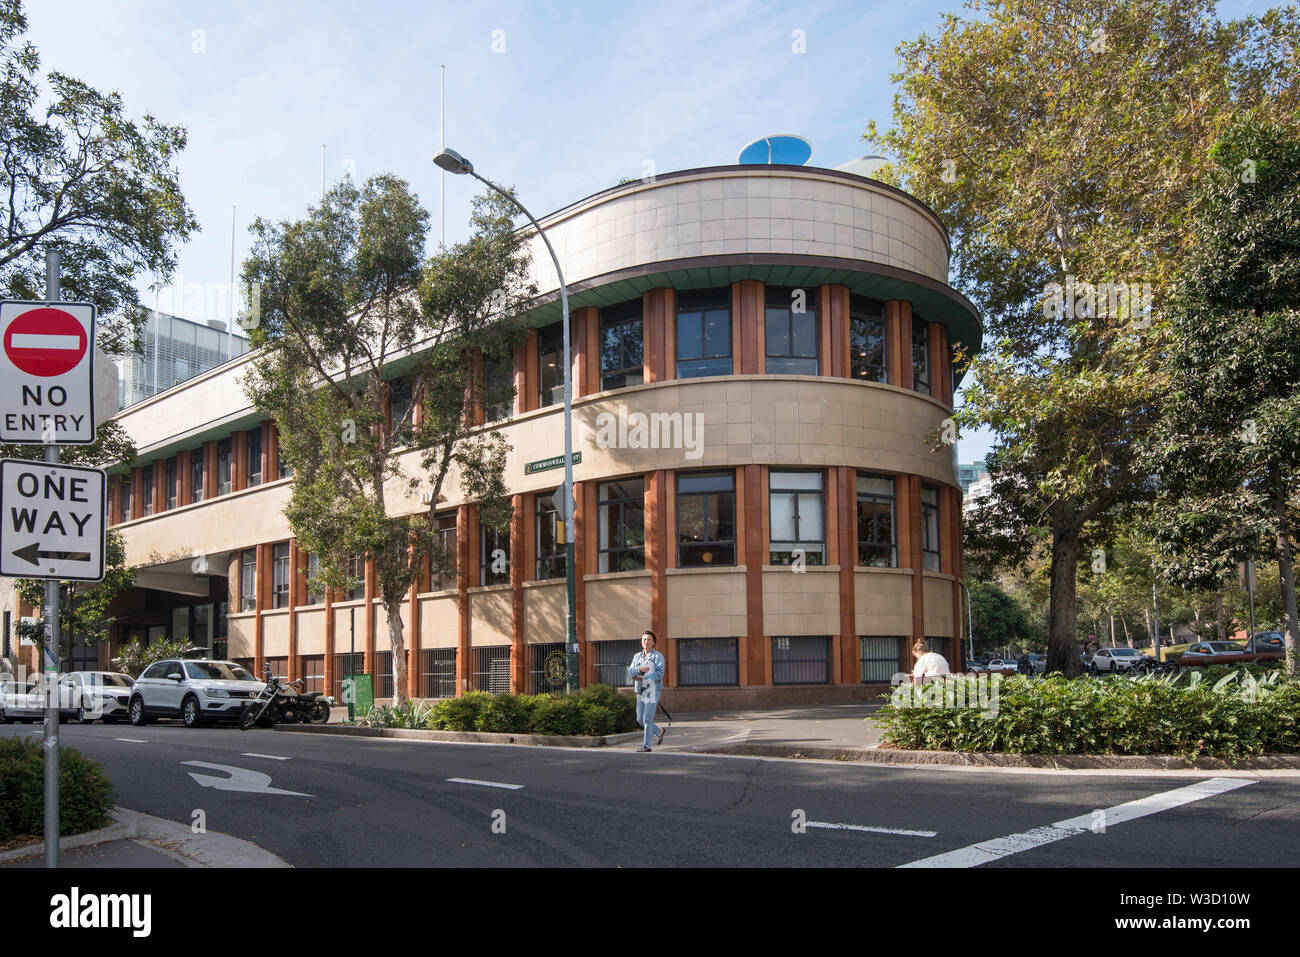 The 1940 built former Paramount Pictures Studios building is a good example of Inter-War Functionalist architecture with a bold curved street facade. - Stock Image